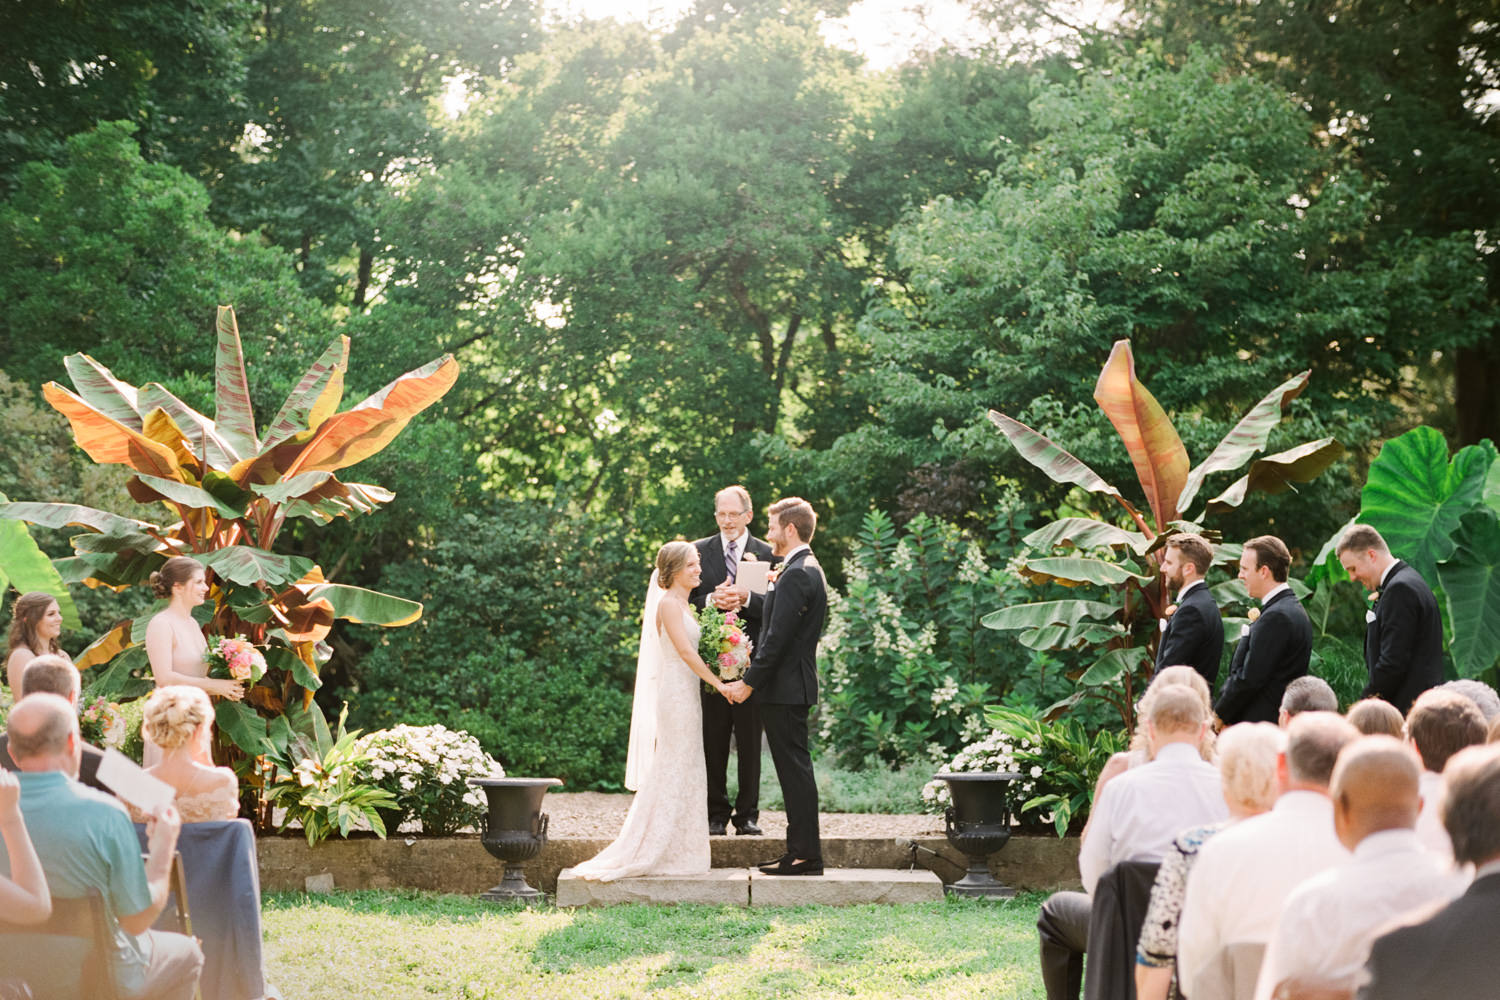 Yew Dell Wedding Photo of Bride and Groom in lush garden area outdoors at the Botanical Garden in Louisville, Ky